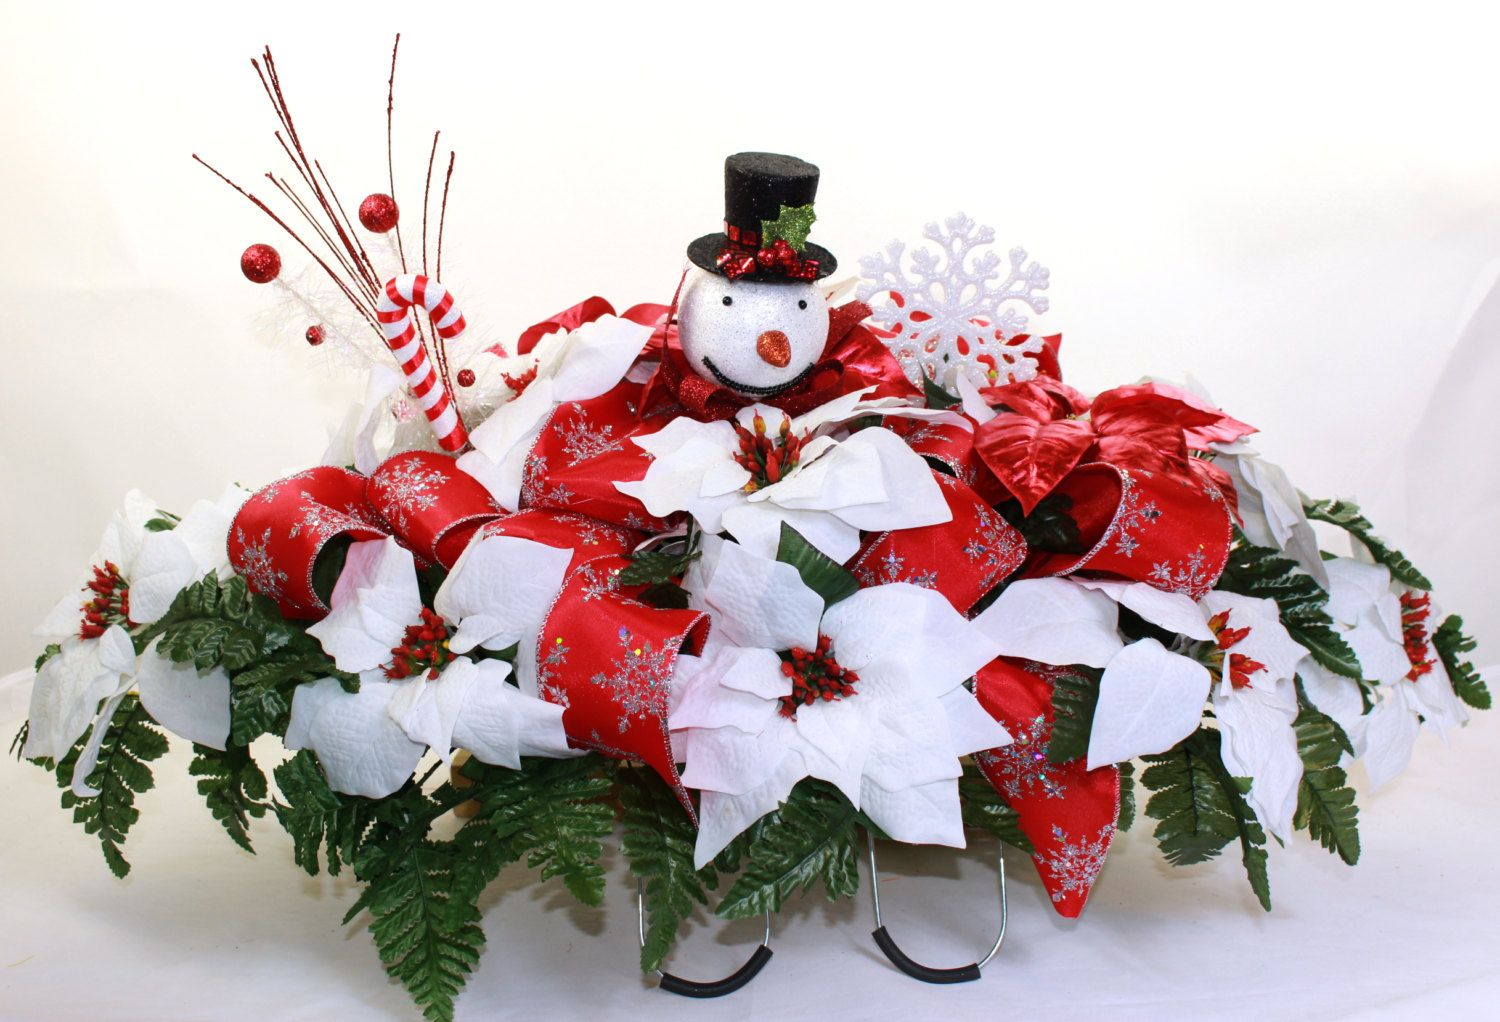 Holiday Christmas White Poinsettia S Silk Flower Cemetery Tombstone Saddle Headstones Decorations Sympathy Flowers Christmas Wreaths